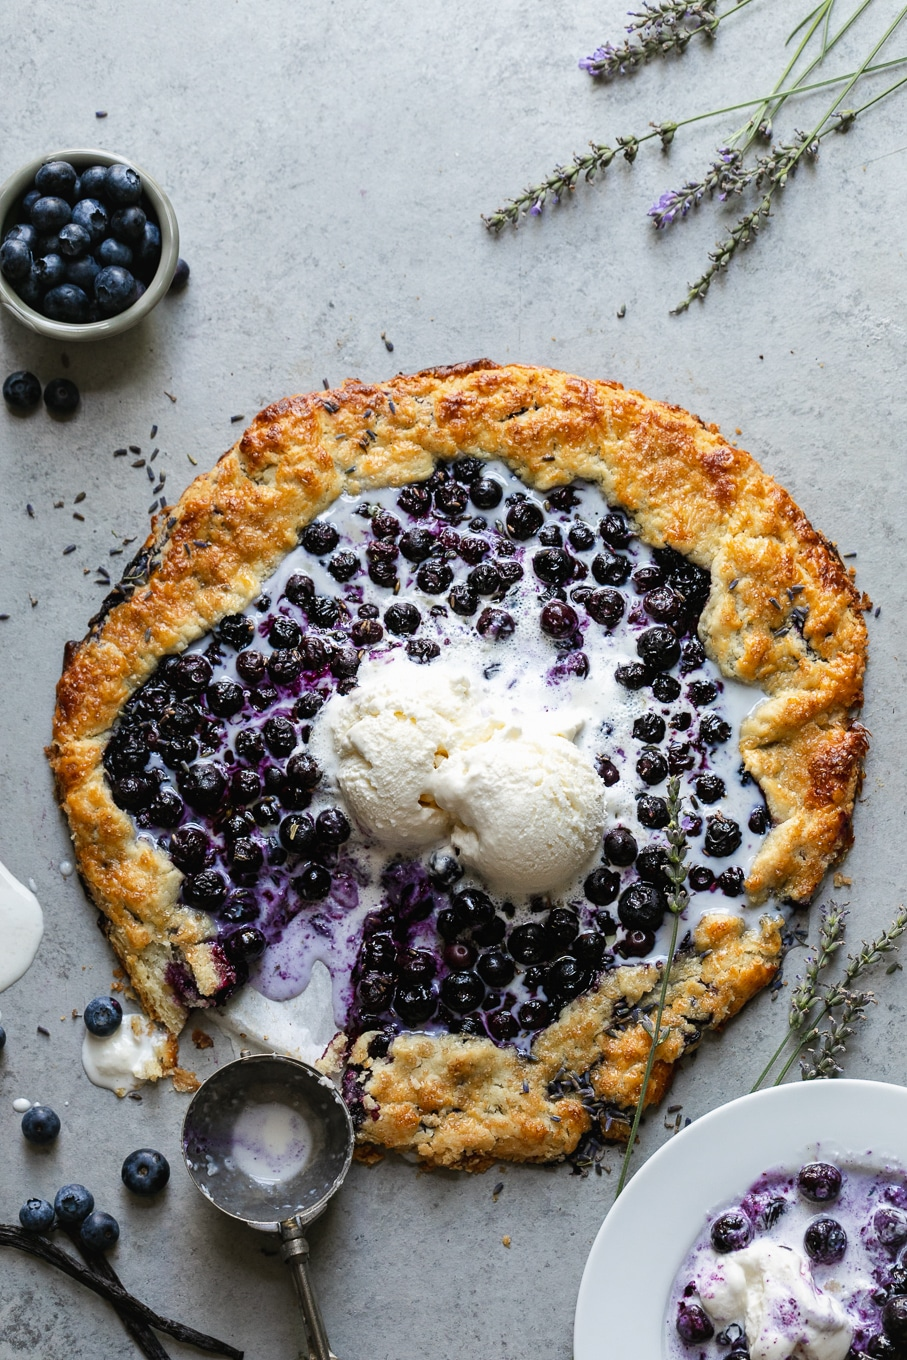 Overhead shot of a blueberry galette with melting vanilla ice cream on top